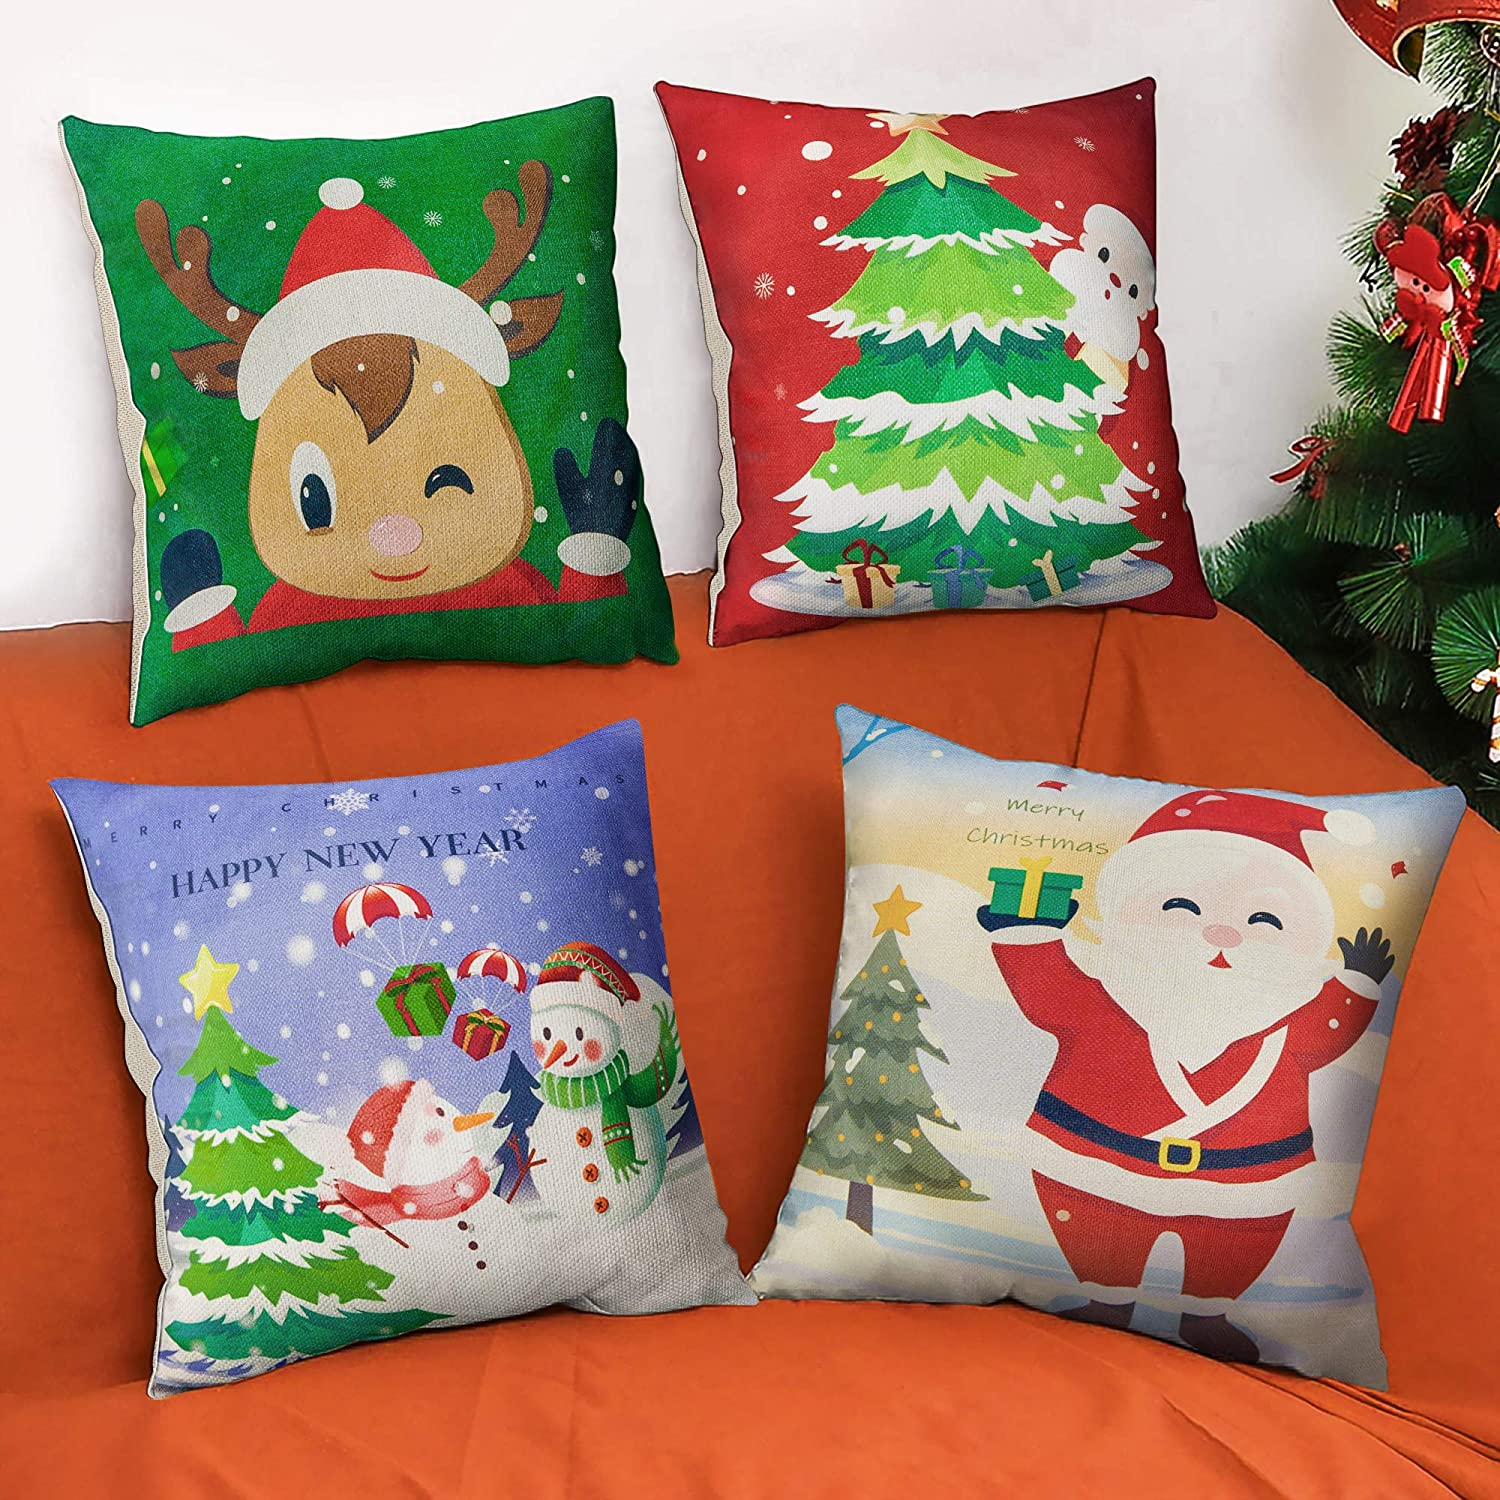 BININBOX Christmas Pillow Cover 4 Sets 18x18 Inch Xmas Decor Santa Deer Pillow Covers Farmhouse Decorative Square Linen Throw Pillow Covers for Sofa, Couch, Bed and Car